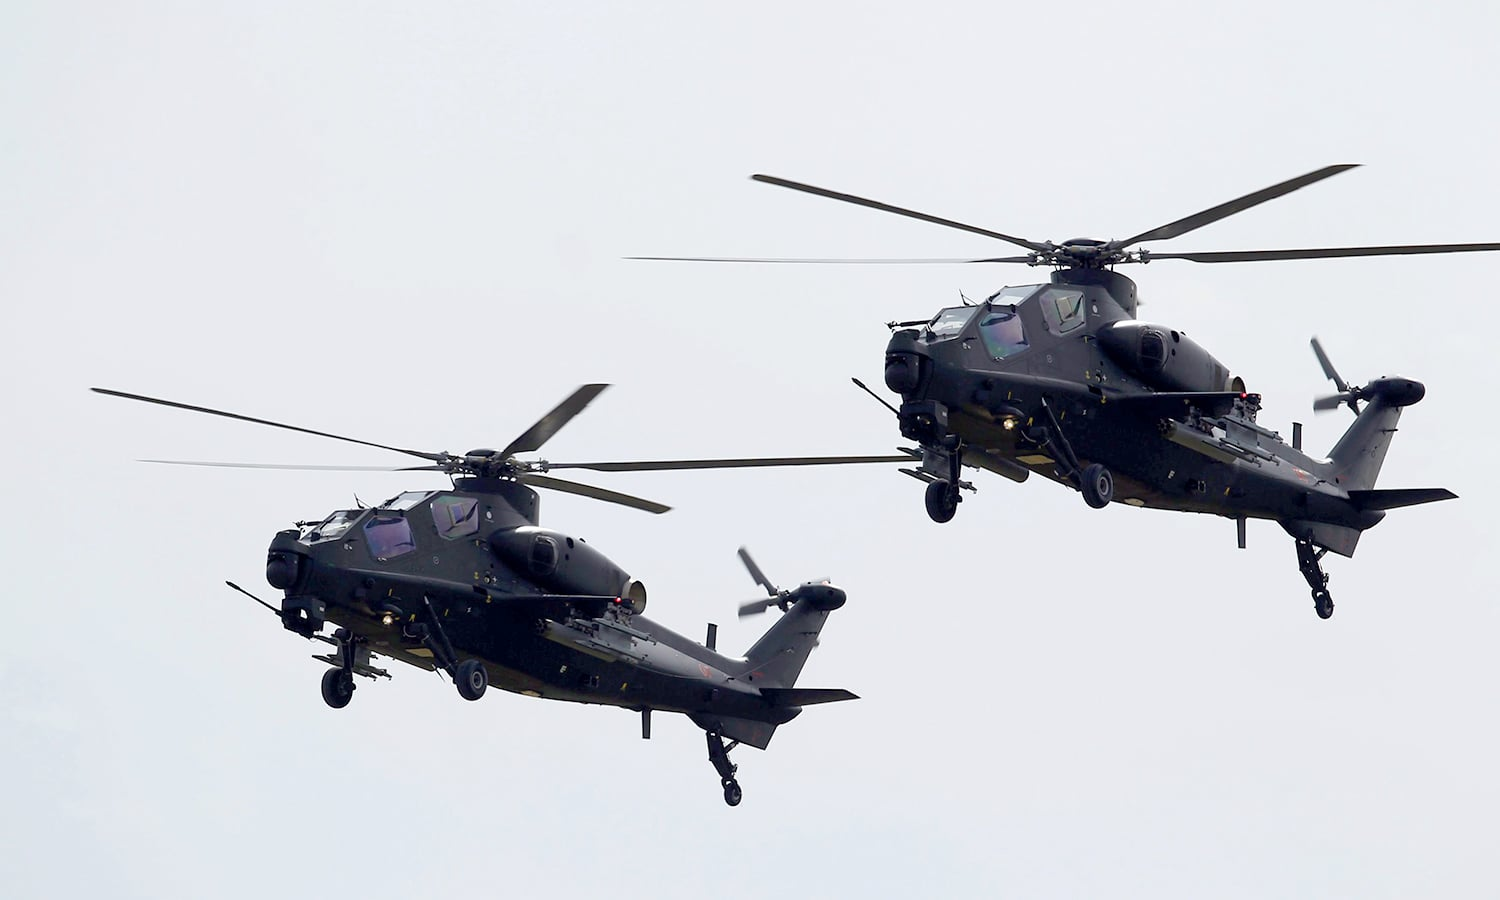 Z-10 attack helicopters fly past during the parade. ─ Reuters